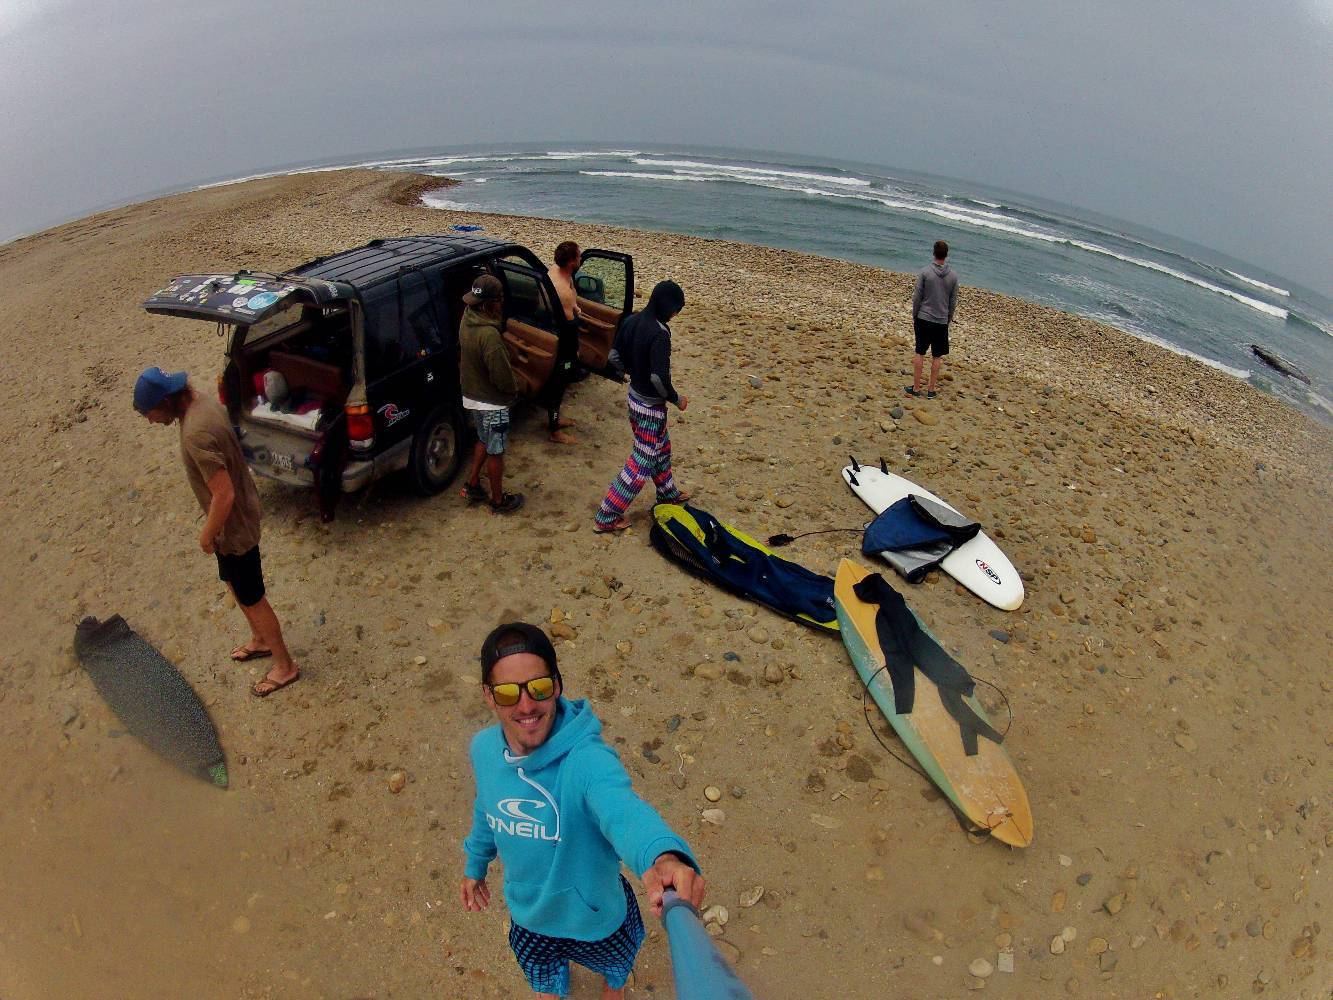 2013 | Perú Surf trip - Supported by O'Neill